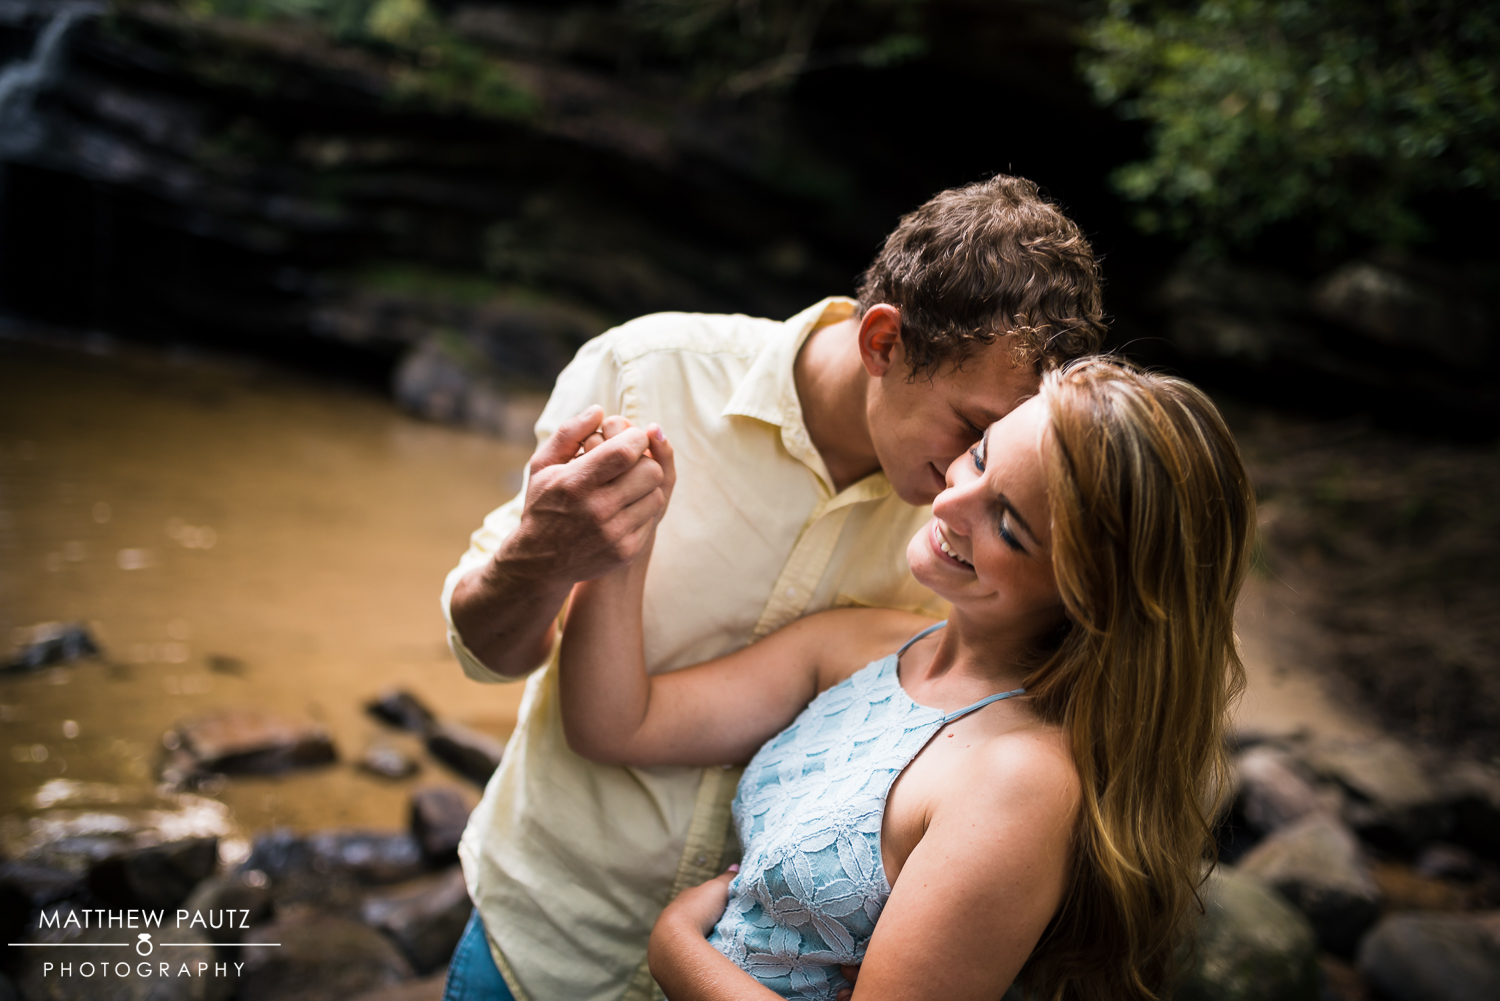 Table rock state park engagement photos